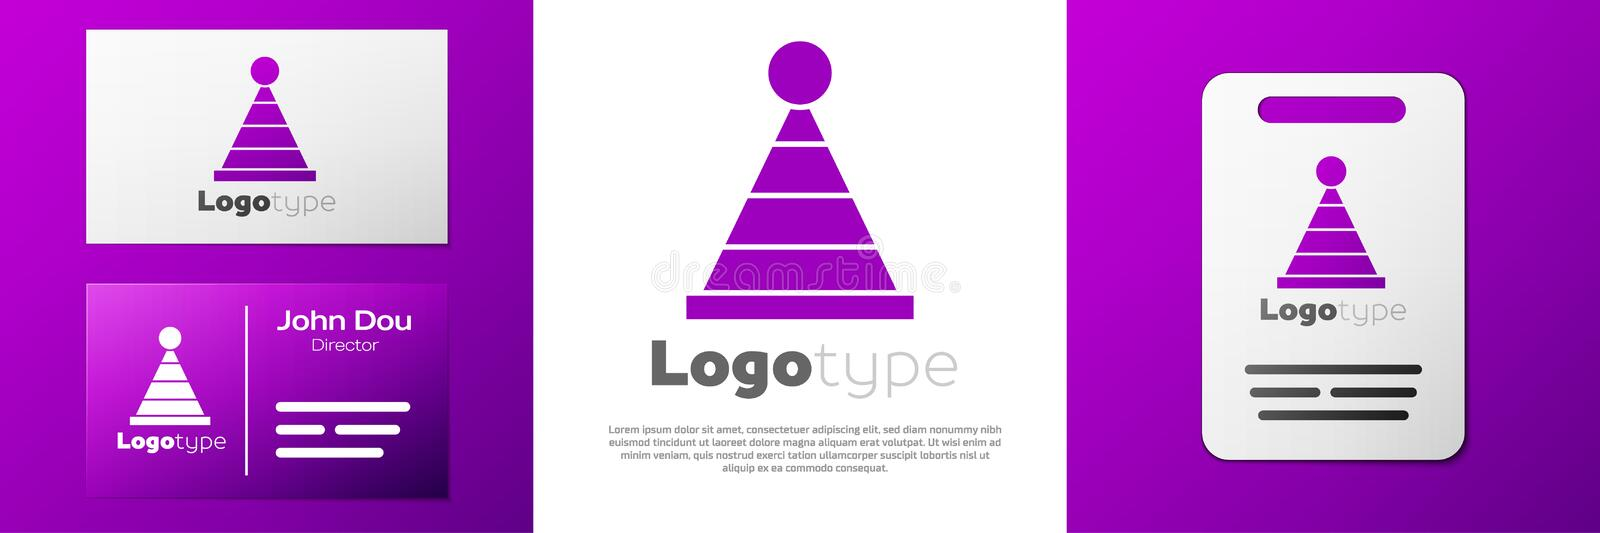 Party Hat Template Stock Illustrations 20 268 Party Hat Template Stock Illustrations Vectors Clipart Dreamstime